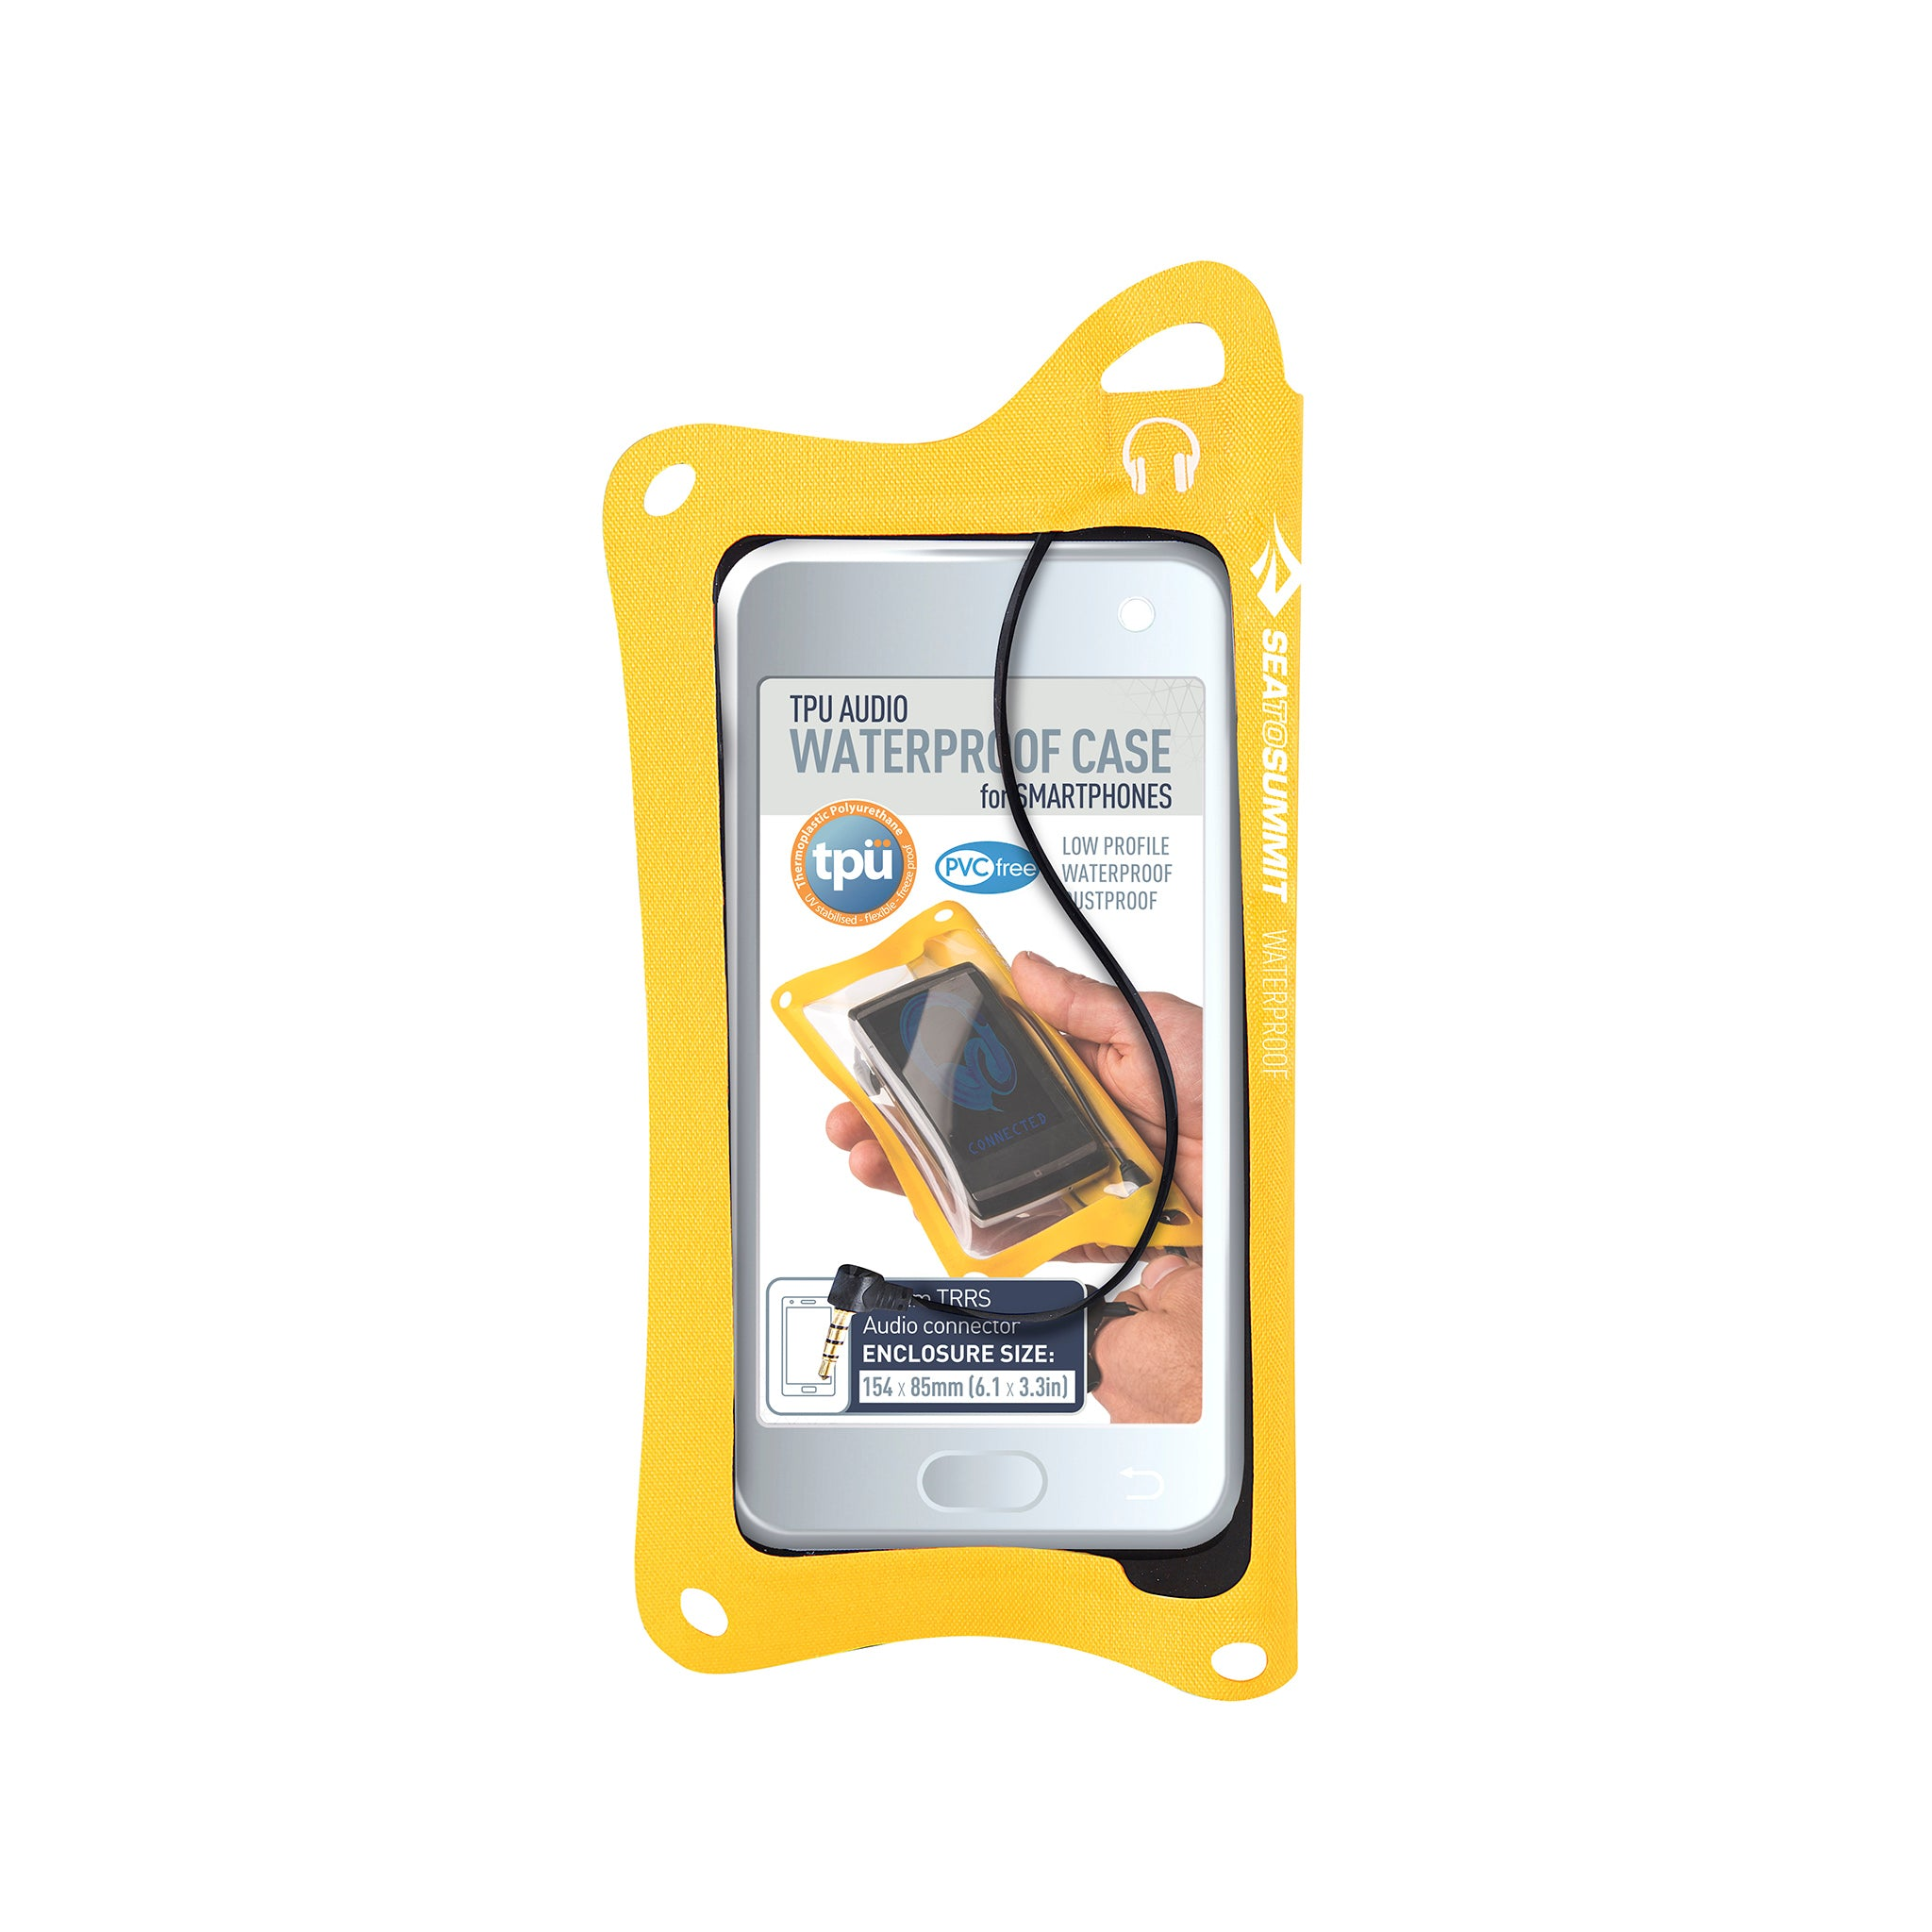 TPU Audio Waterproof Case for Phones _ iPhone _ yellow